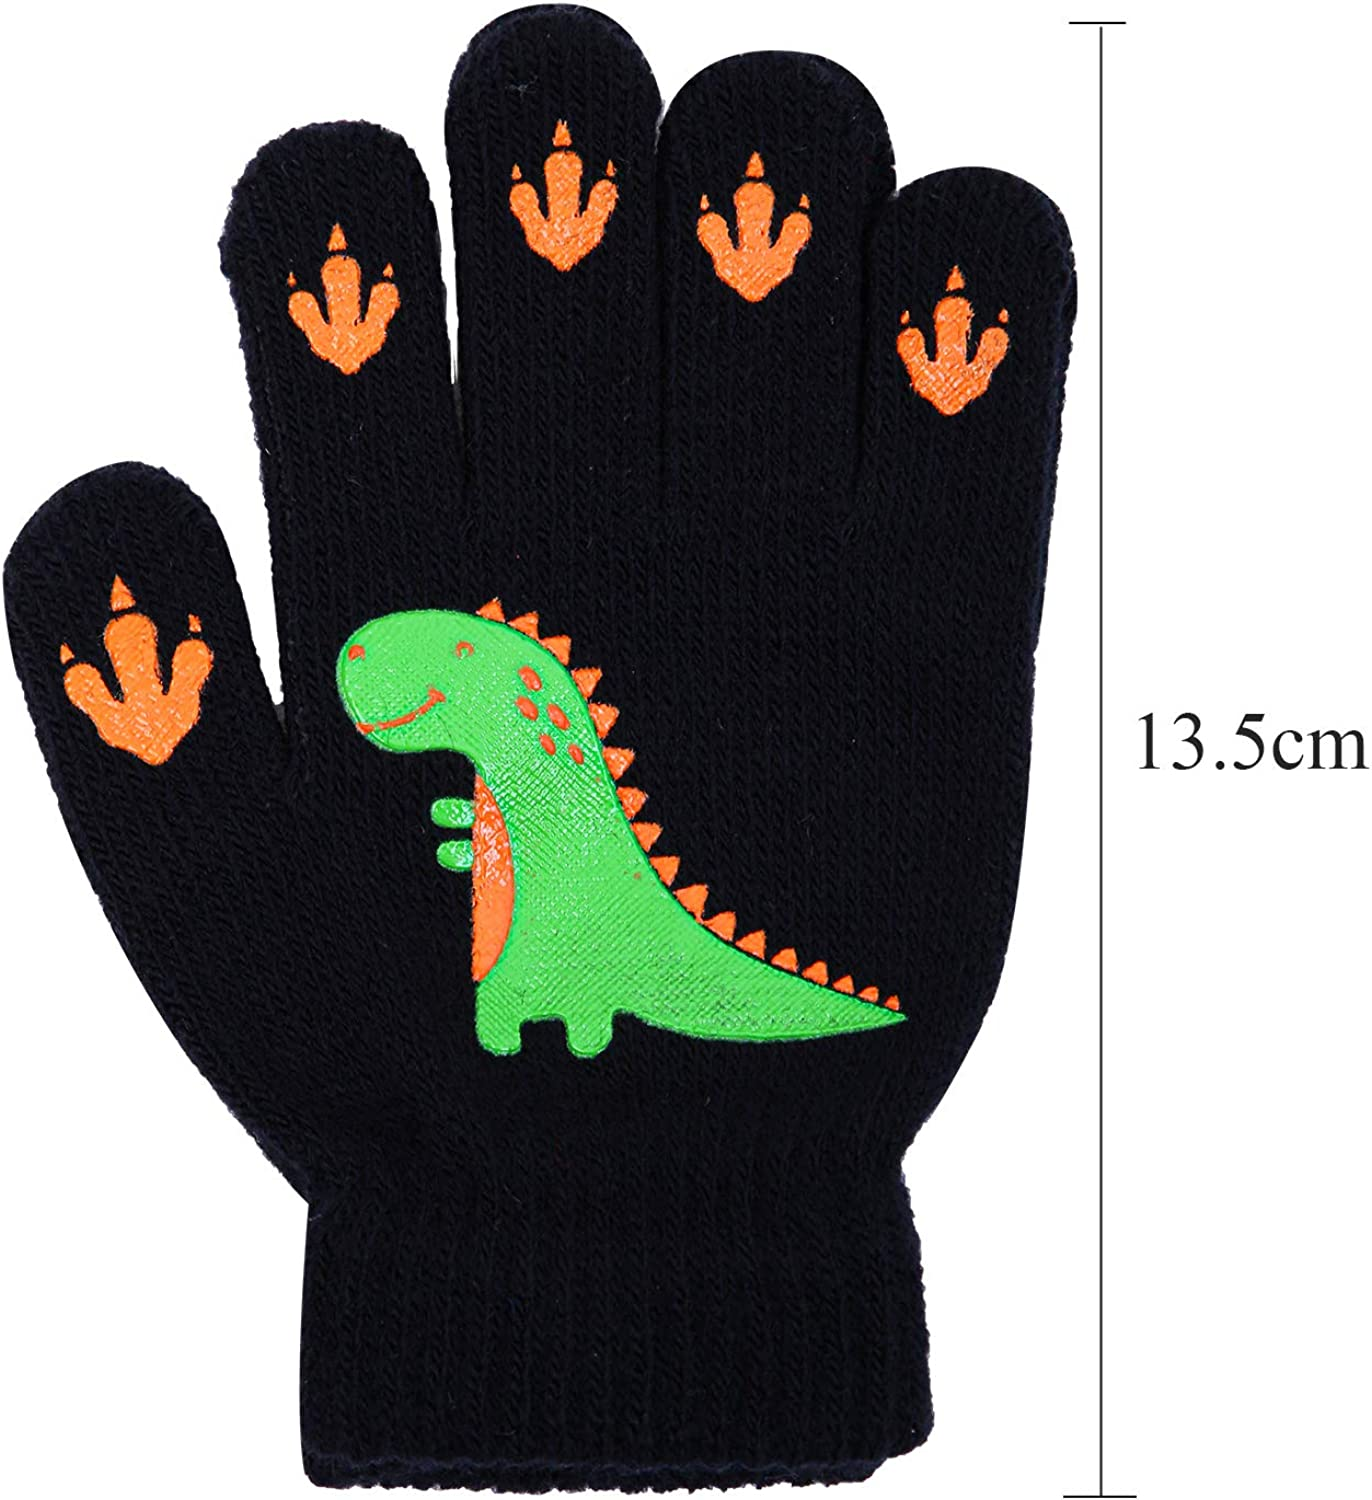 Cooraby 6 Pairs Kids Warm Magic Gloves Winter Stretchy Knit Gloves for Boys Girls